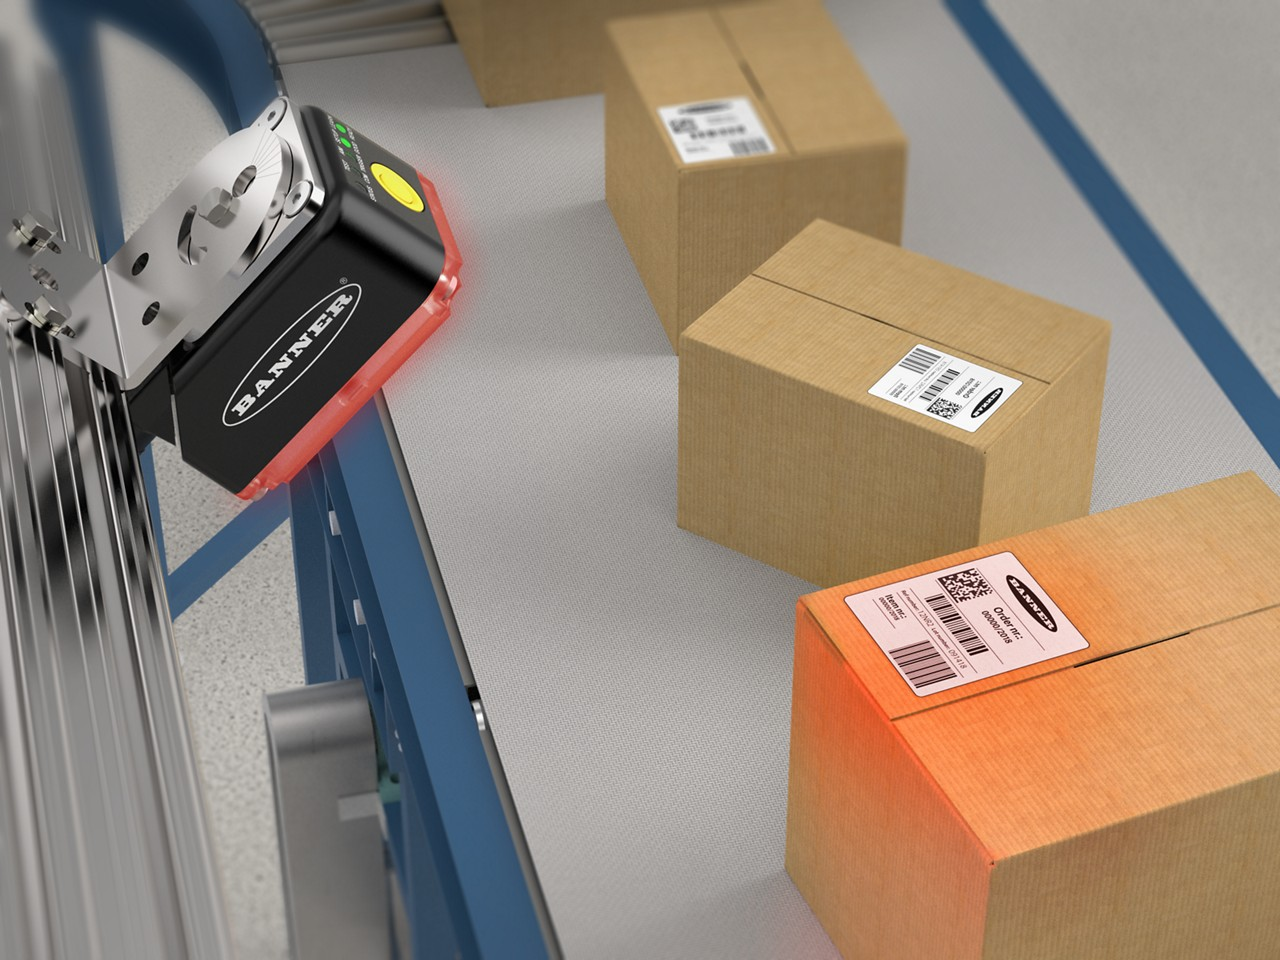 ABR 7000 barcode reader scans 1D and 2D codes on boxes